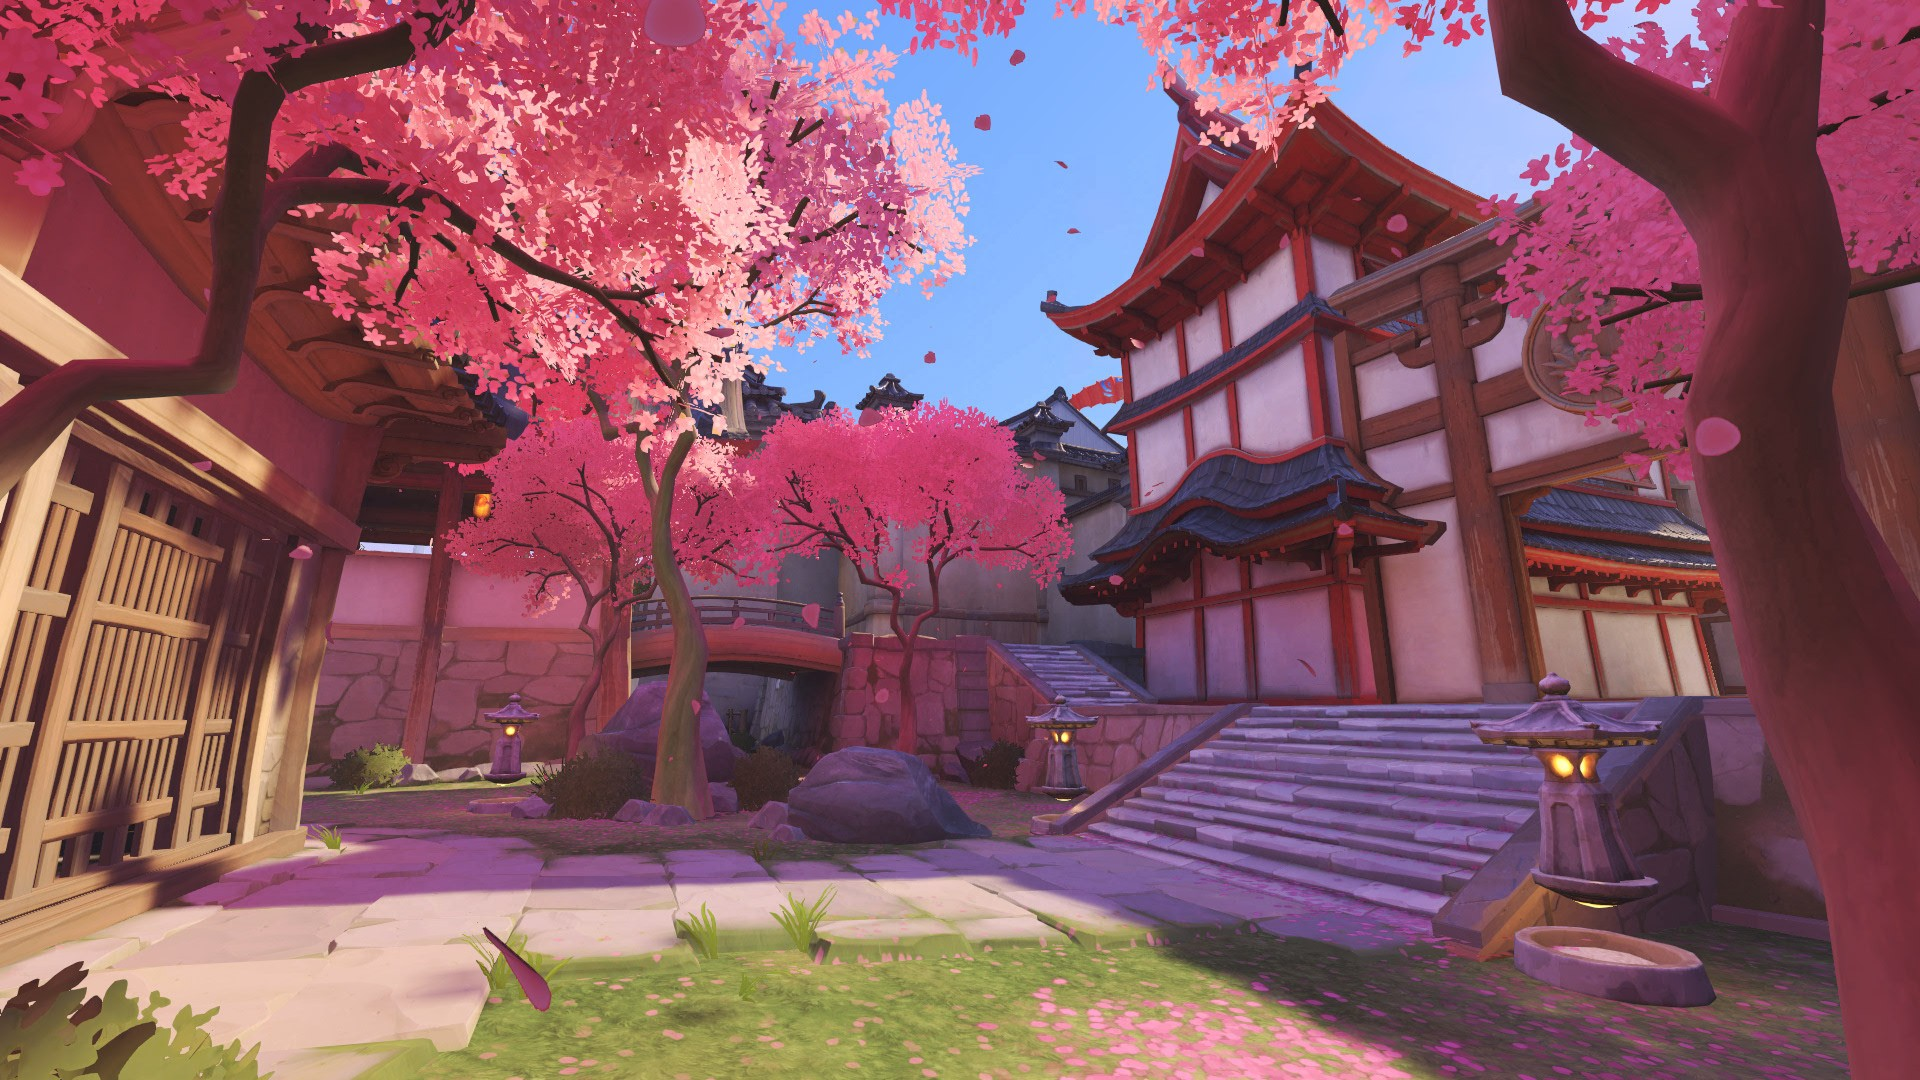 3d Phone Wallpaper Hd Hanamura Overwatch Overwatch Wallpapers Hd Desktop